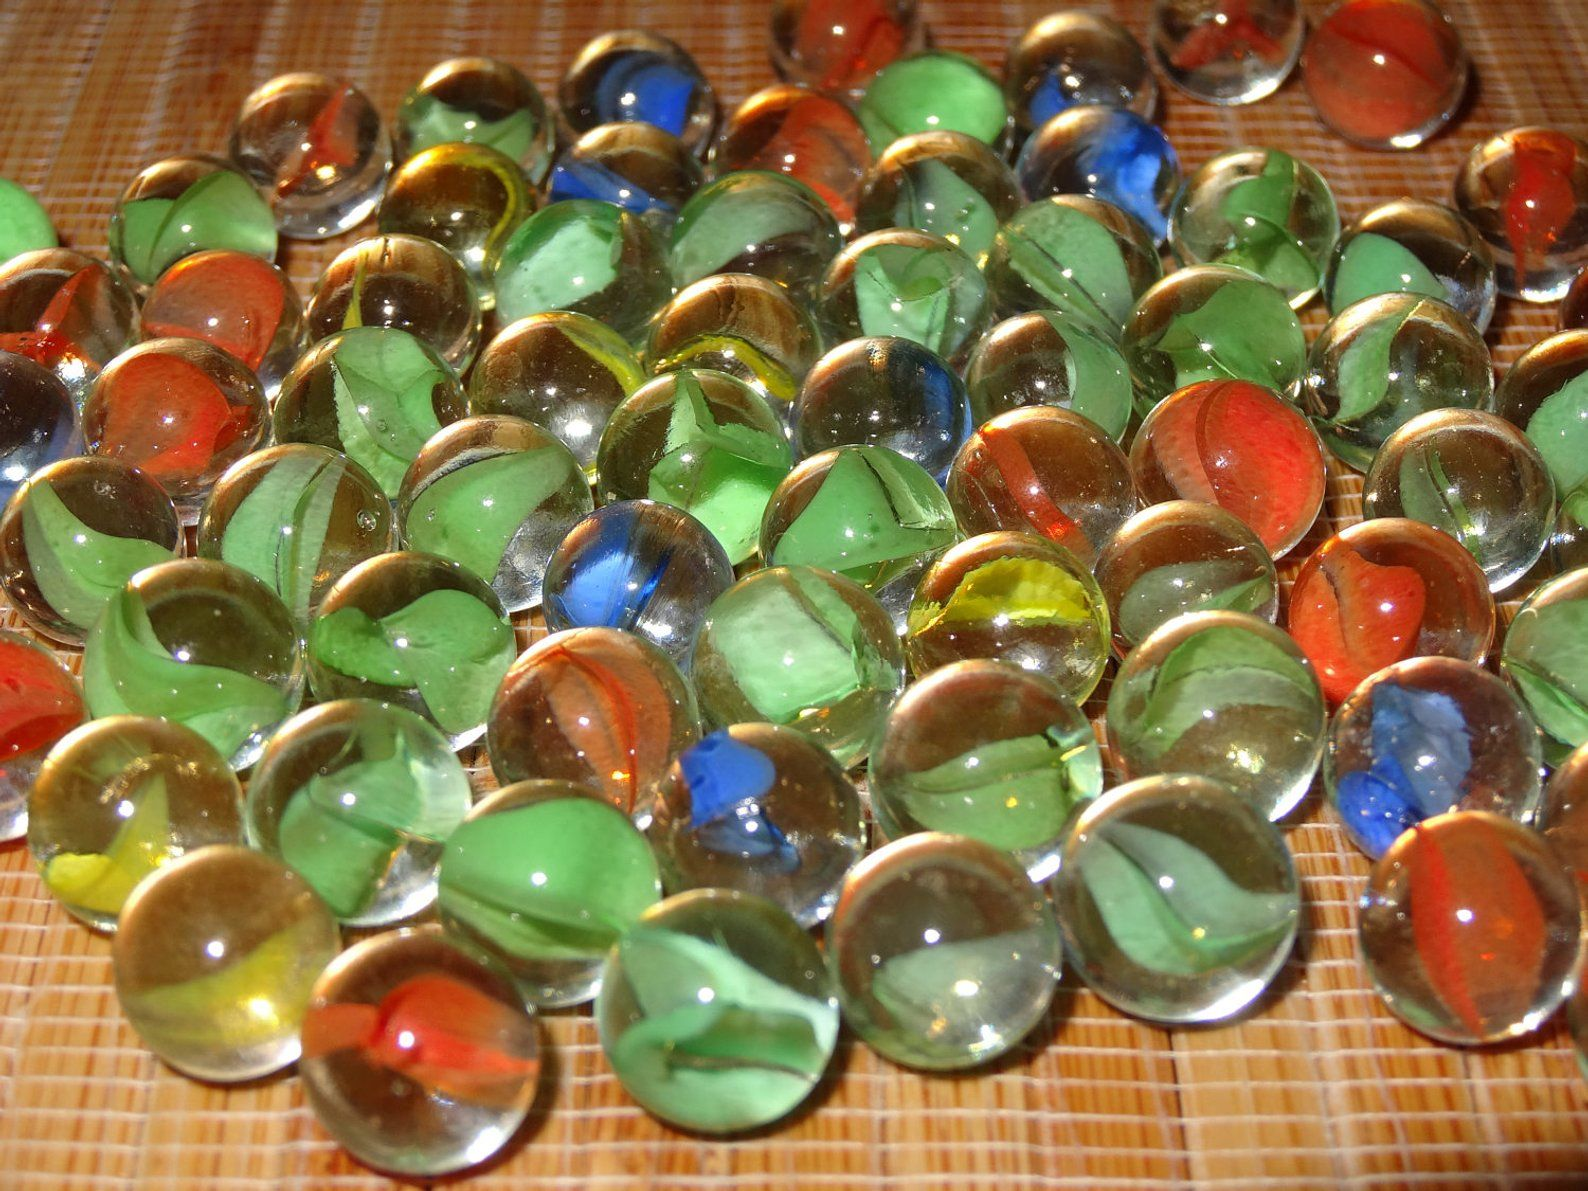 Lot of 25 Vintage Pee Wee Cat's Eye Marbles / Glass Etsy